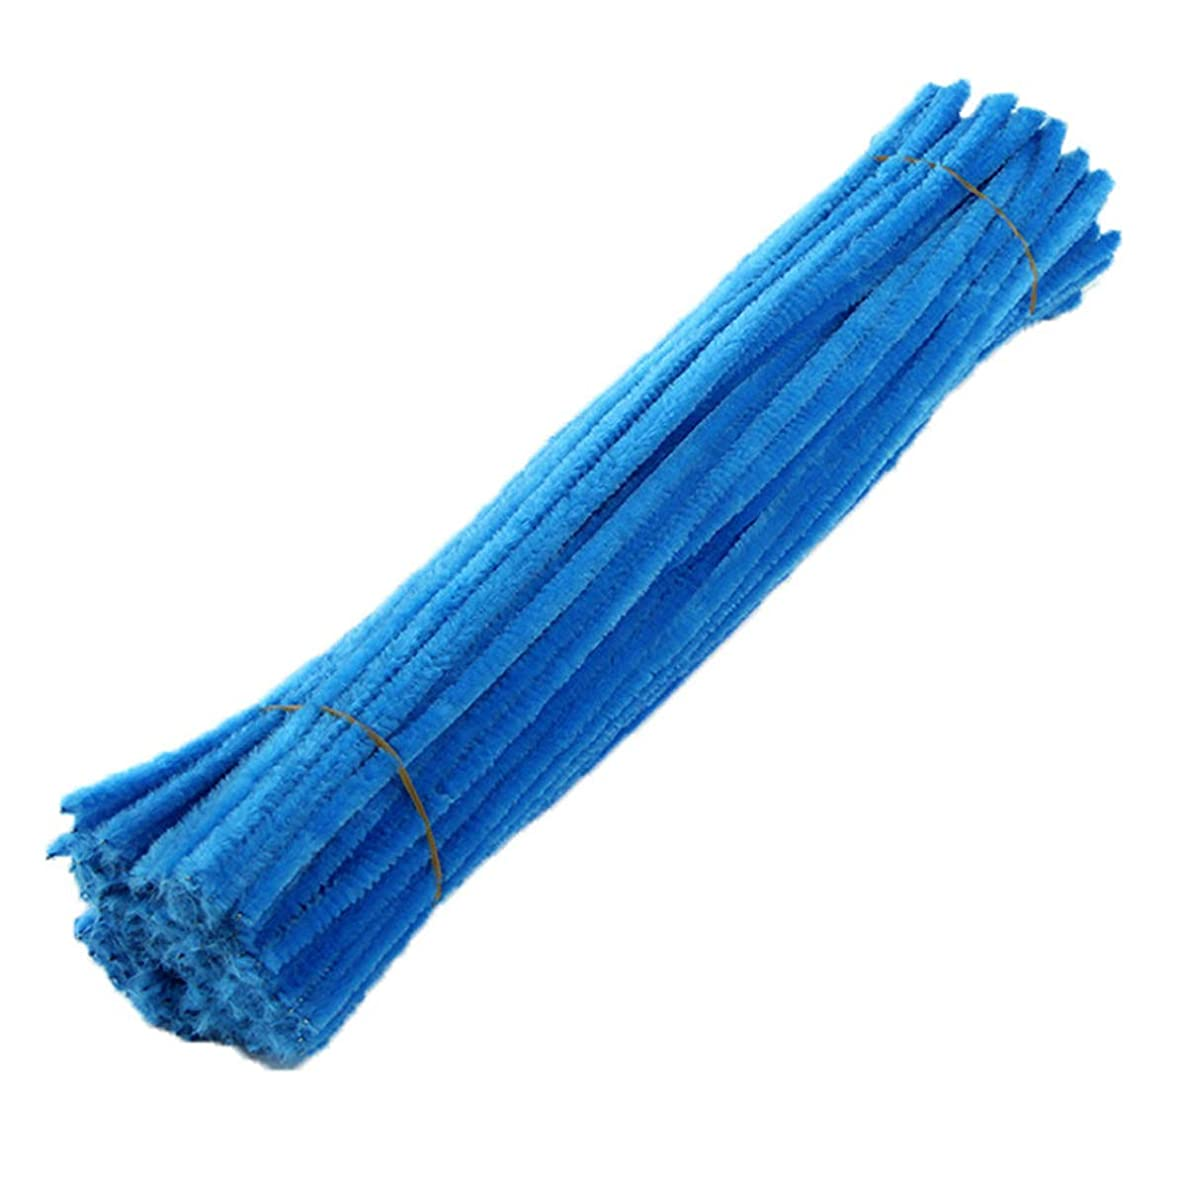 Pipe Cleaners 100 Pieces 6 x 300 mm Chenille Stem for Arts and Crafts (Blue)